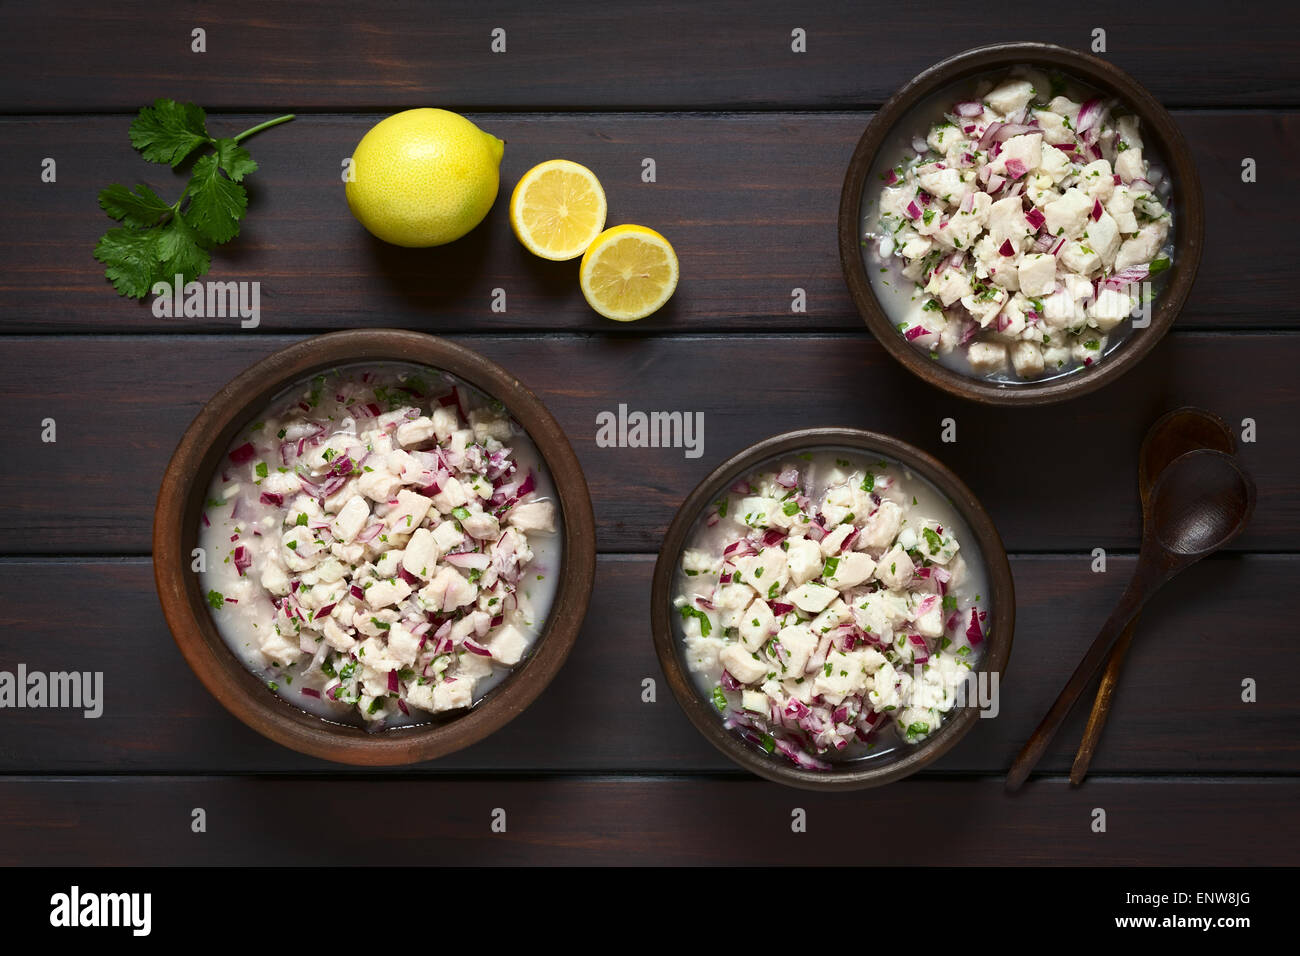 Chilean Ceviche made of Southern Ray's bream fish (lat. Brama Australis, Spanish Reineta), onion, garlic, cilantro, - Stock Image